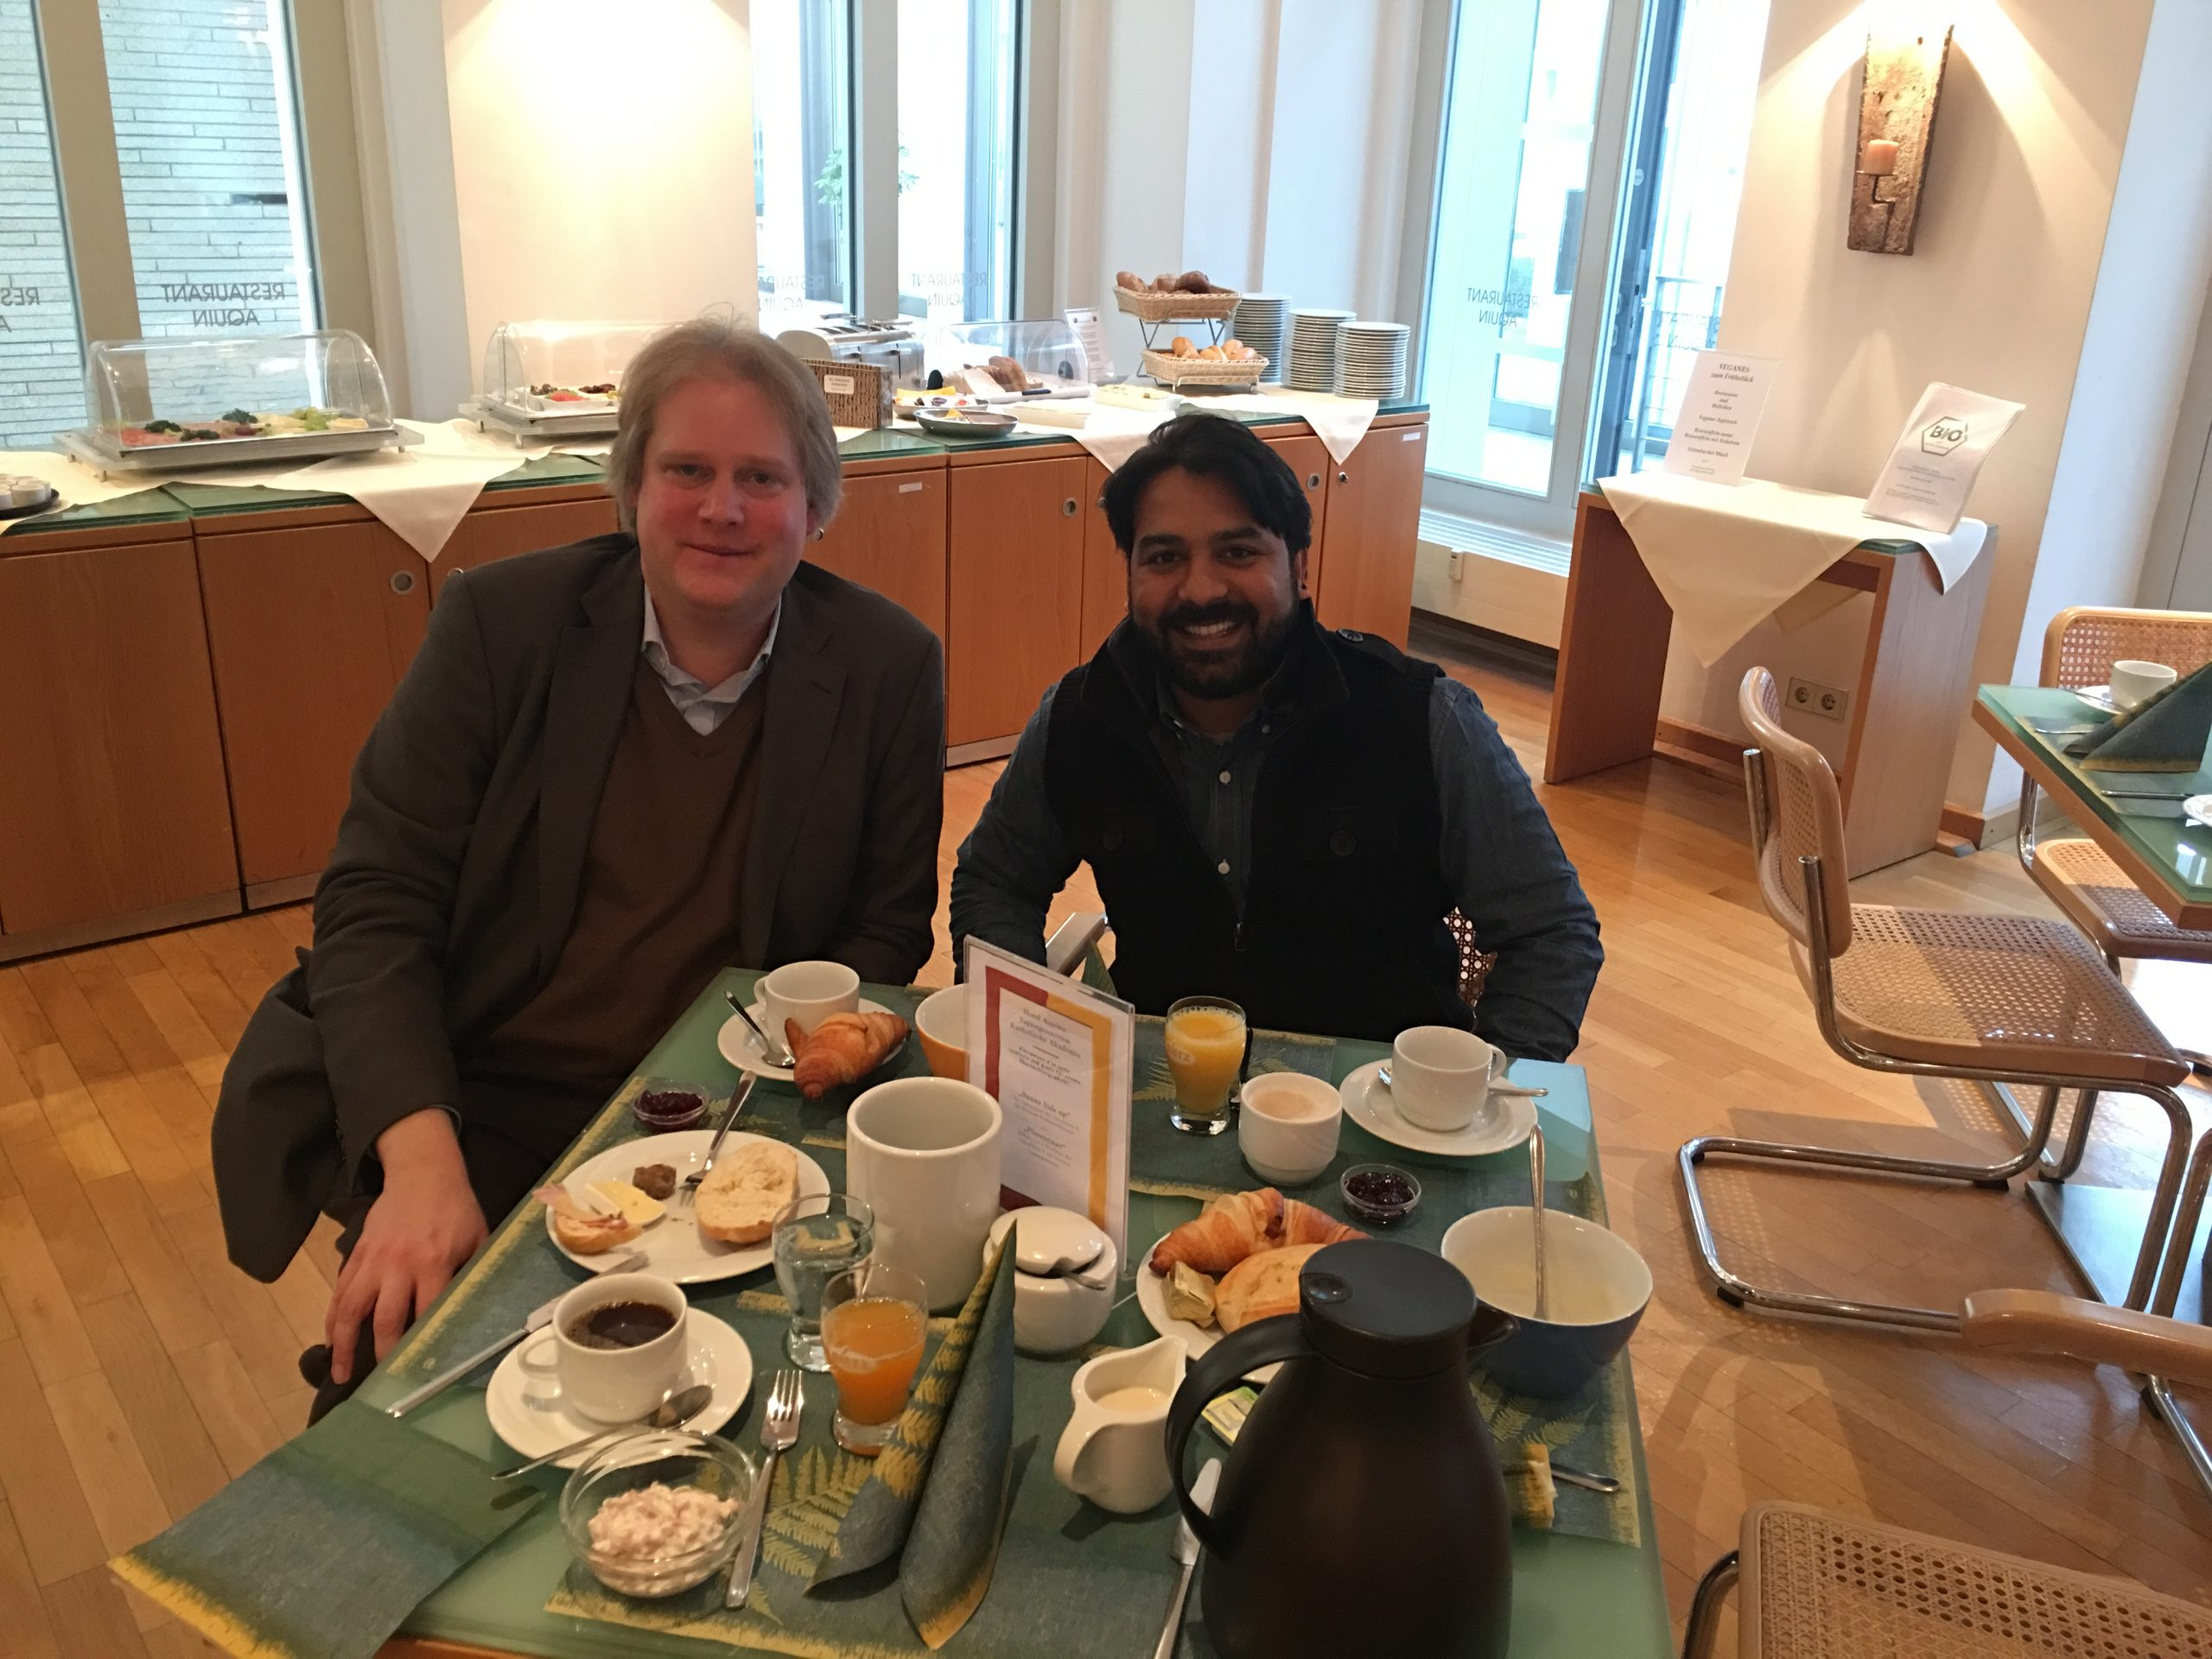 Mee­ting with Dr. Tho­mas Würtz (Catho­lic Aca­de­my in Berlin)